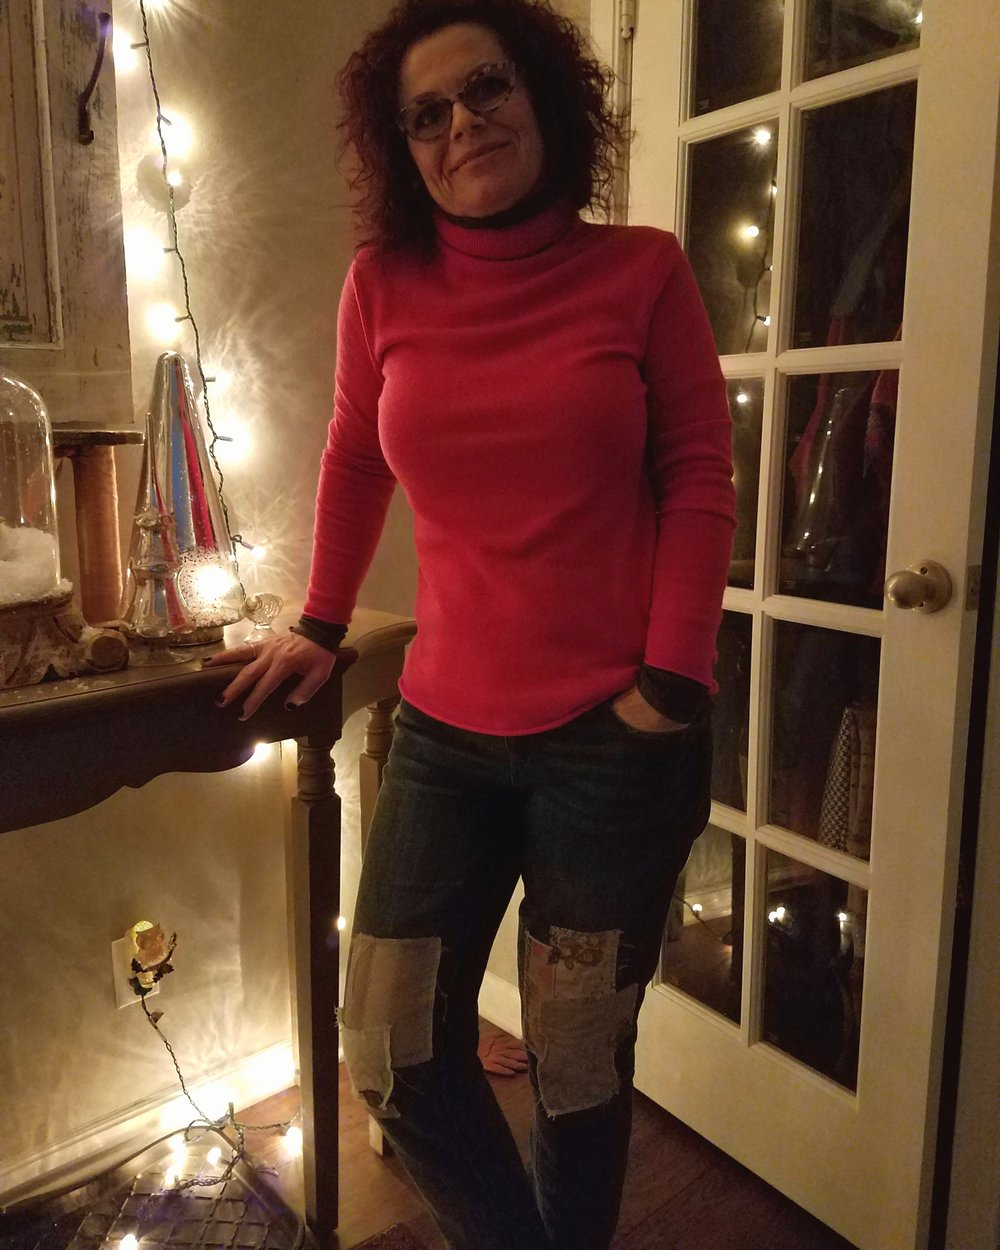 "Another bright pop of color with patchwork jeans for a cozy date night.  One of my ""Winter Uniforms"" tends to be a turtleneck and jeans.  The turtleneck is often black or gray - it's nice to mix it up a bit with this great color."